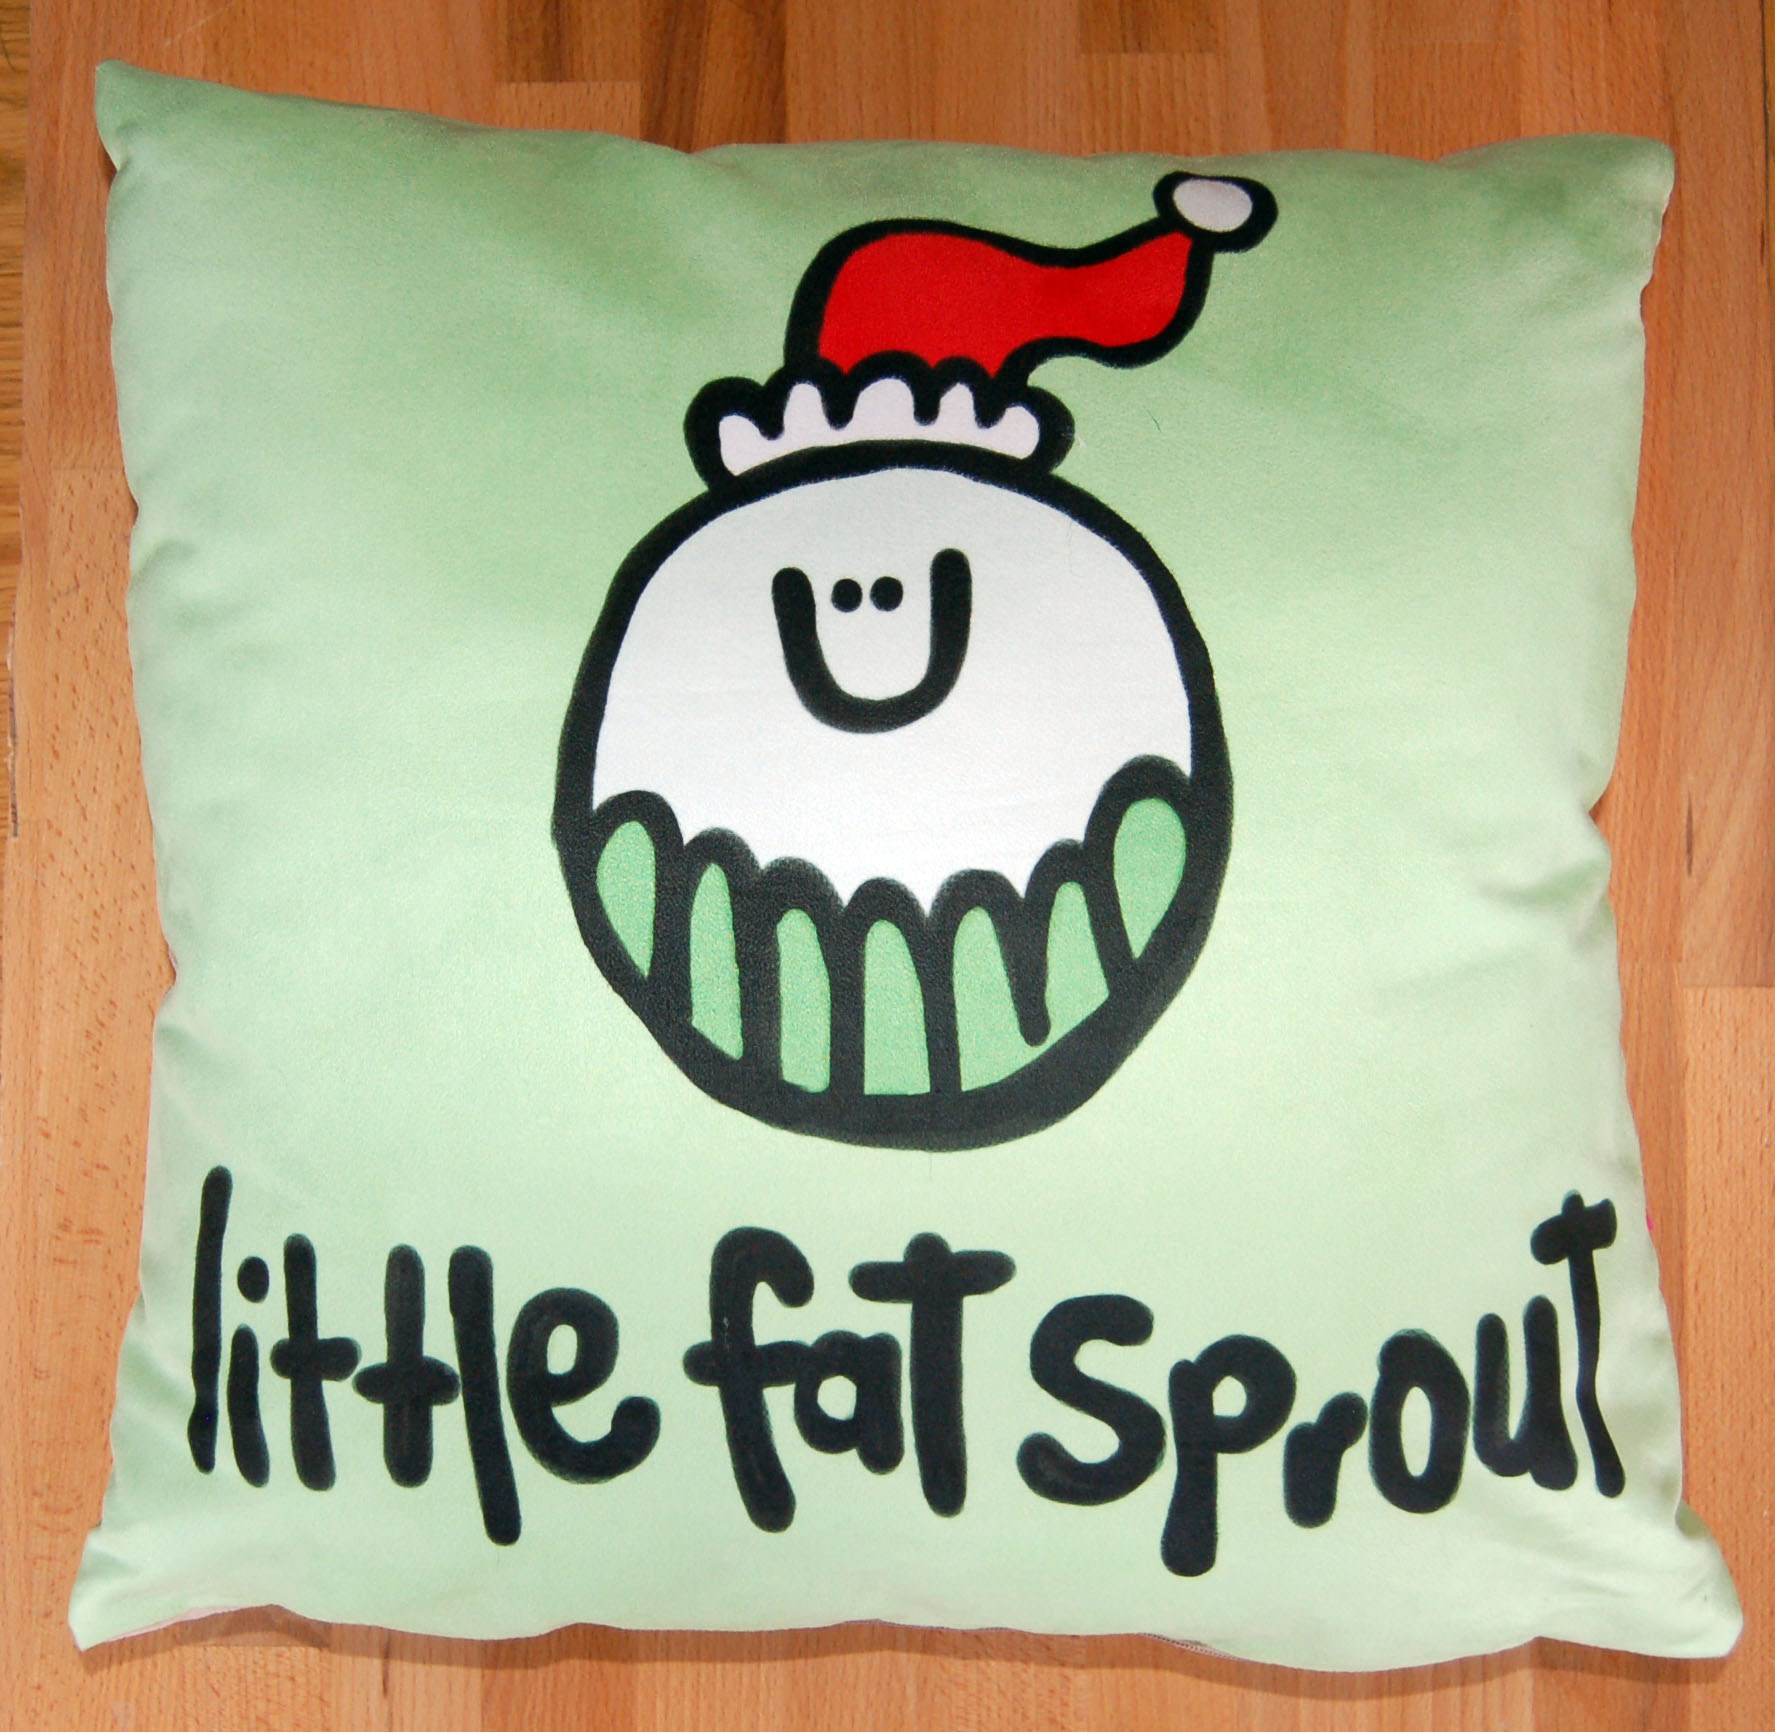 Little Fat Sprout Luxe Cushion